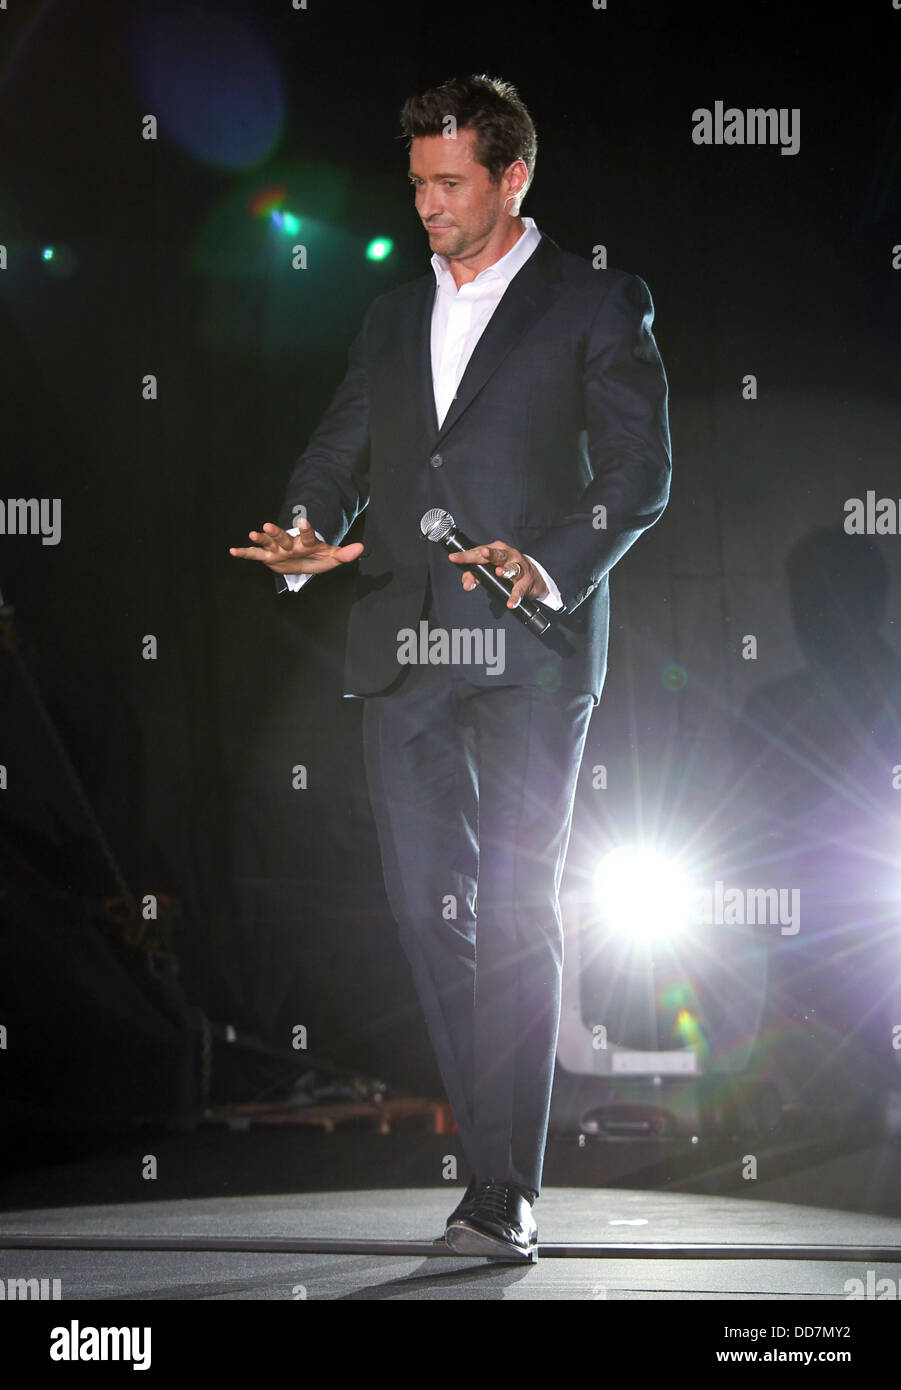 Tokyo, Japan. 28th Aug, 2013. Actor Hugh Jackman attends the Japan premiere promoting ''The Wolverine'' - Stock Image